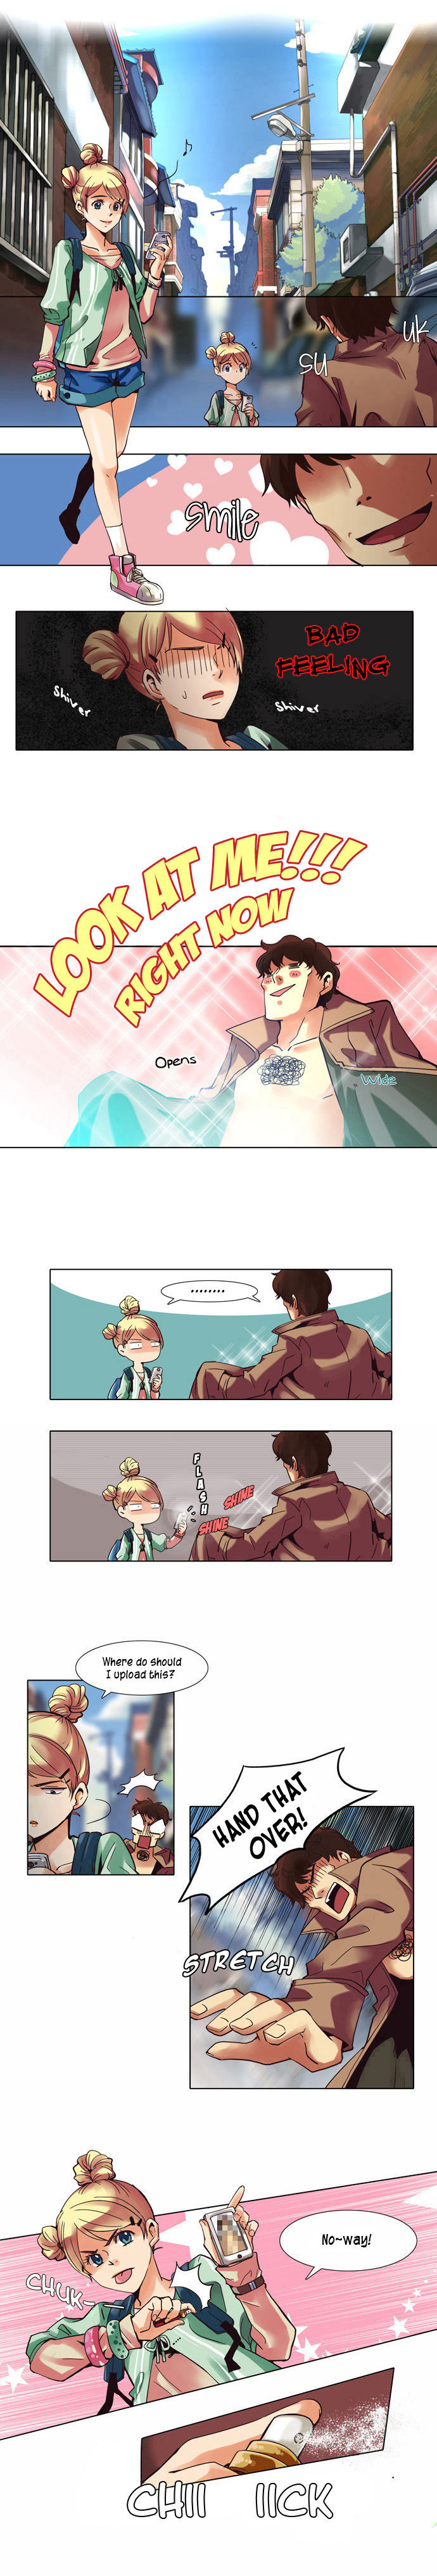 Dear, Only You Don't Know! 5 Page 2